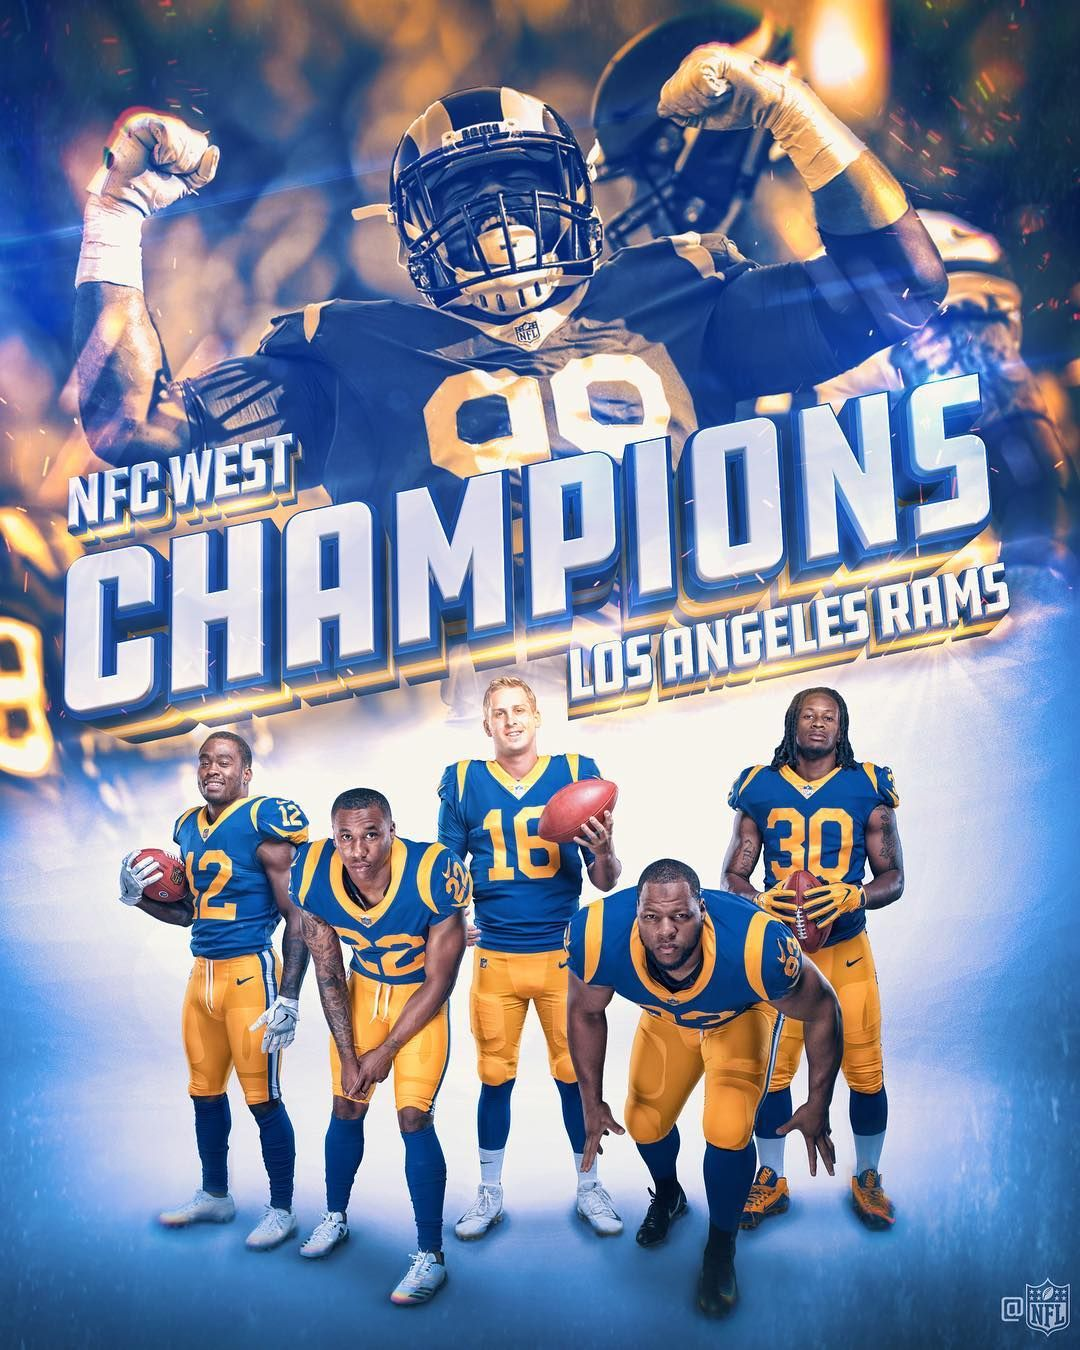 Nfl On Instagram Rams Nfc West Champs La Rams La Rams Football Rams Football